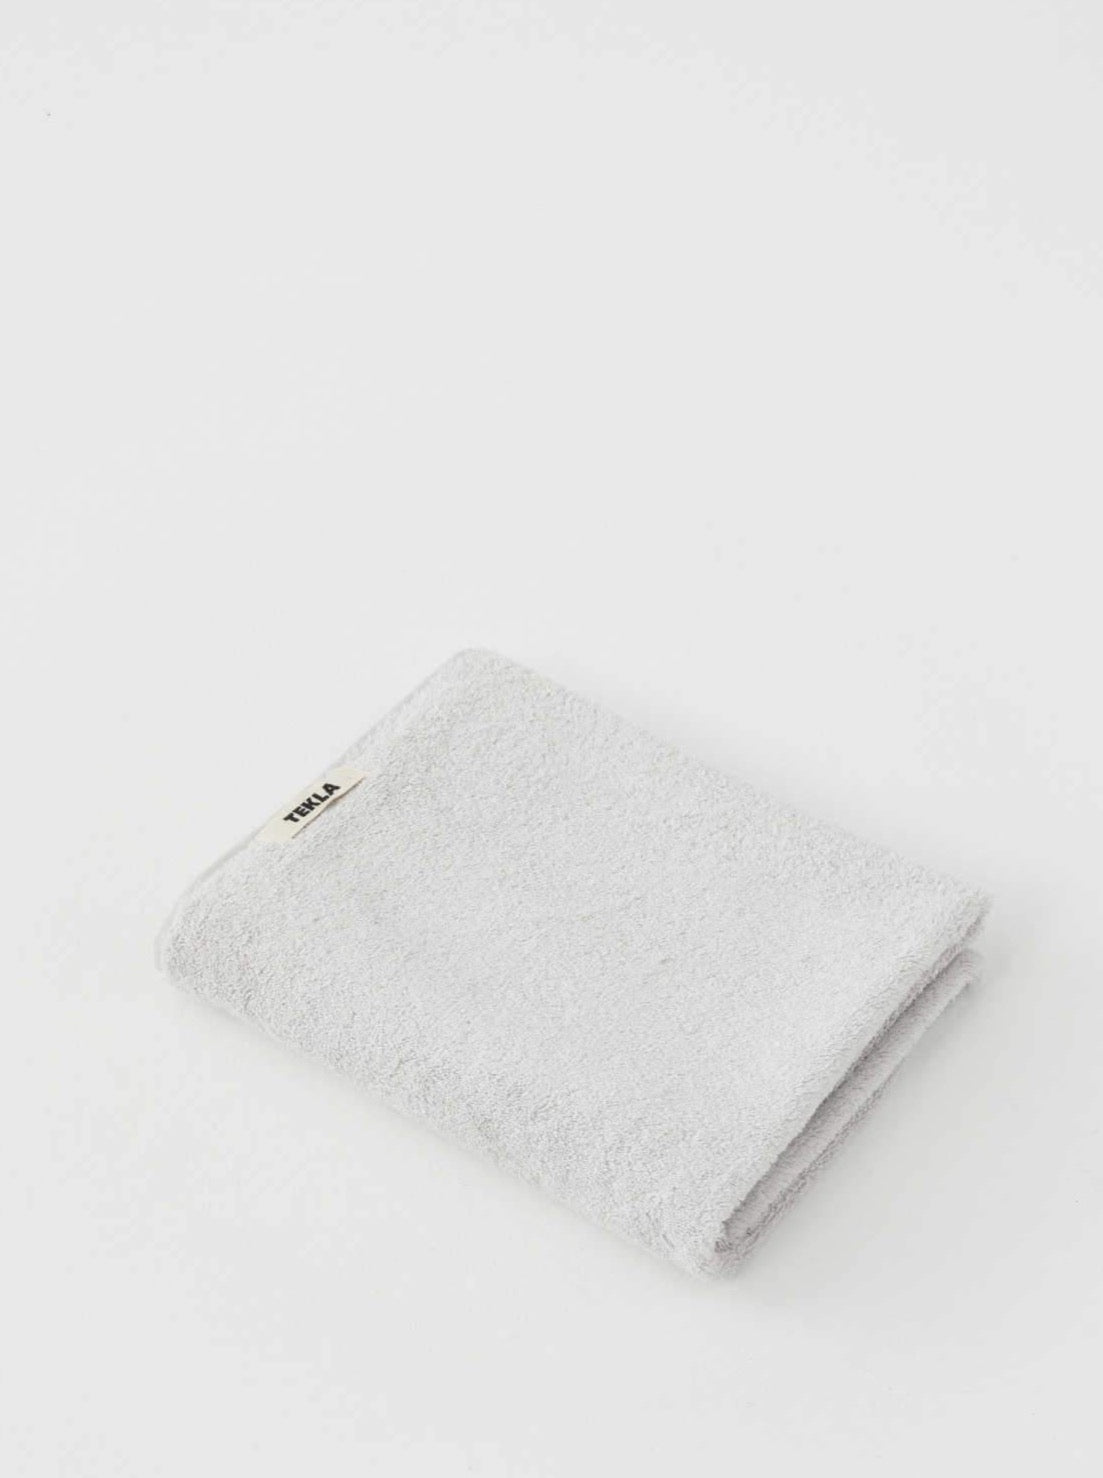 BATH TOWEL LUNAR ROCK (70x140)